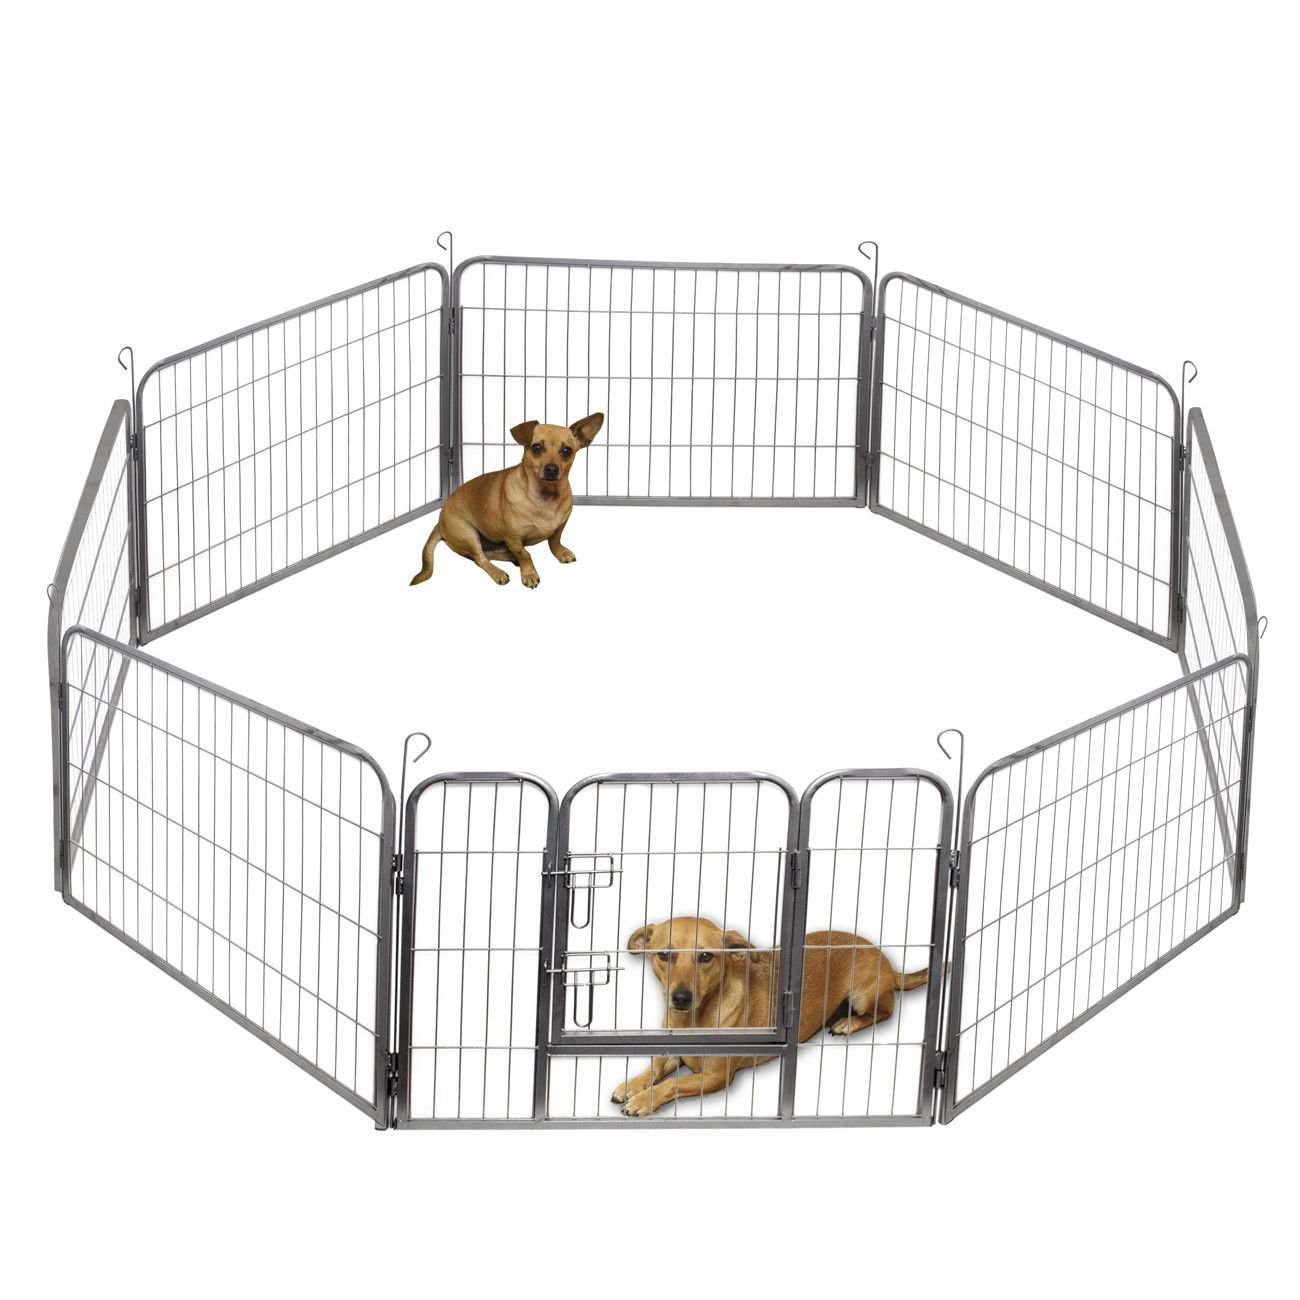 Marketworldcup Dog Pet Playpen Heavy Duty Metal Exercise Fence Hammigrid 8 Panel 24''